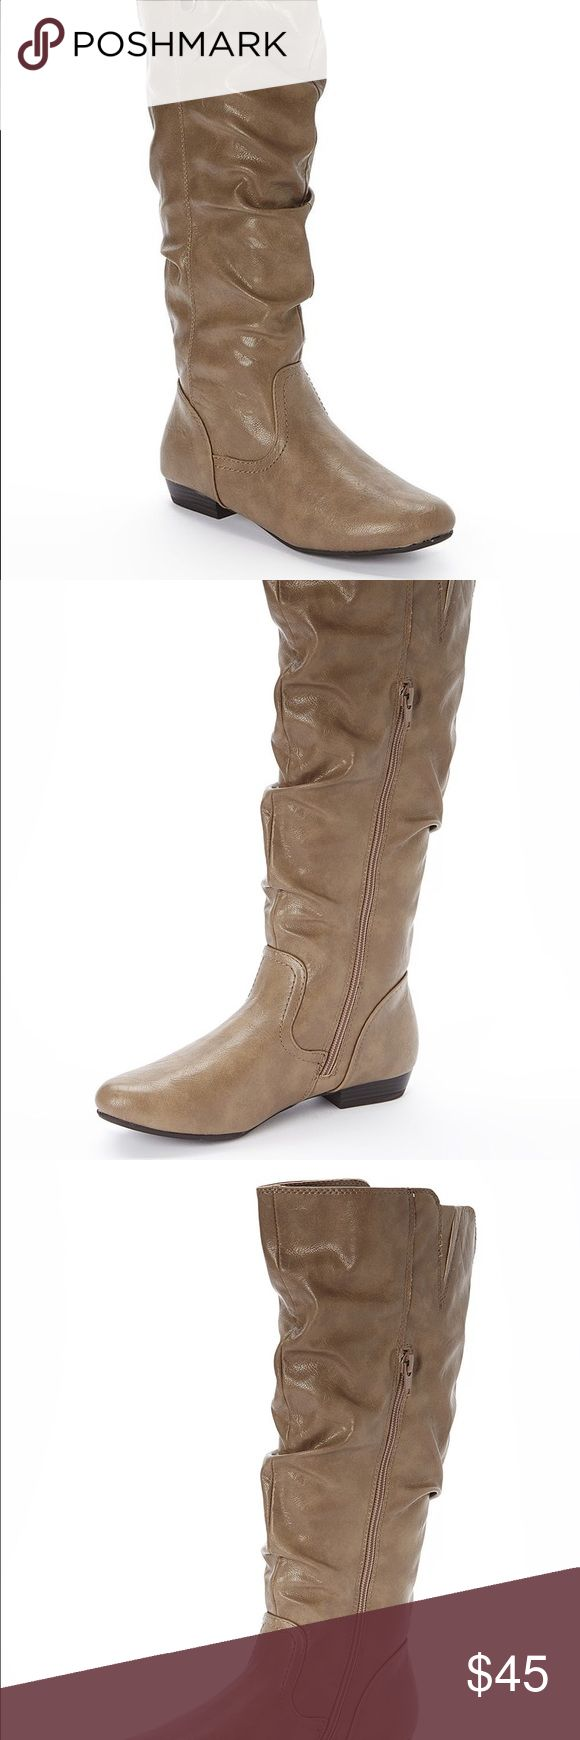 """White Mountain Women's Fun House Wide Calf Boots Designed for a perfect fit, these White Mountain leather boots have a wide calf design that doesn't pinch or bind muscular or larger legs. The slouchy faux leather construction looks great when worn over leggings or jeans, and the side zipper makes these boots easy to put on and take off.  Dress boots are made from faux leather and man-made materials for durability Mid-calf boots have a side zipper for easy wear 1"""" Low heel  Round toe and…"""